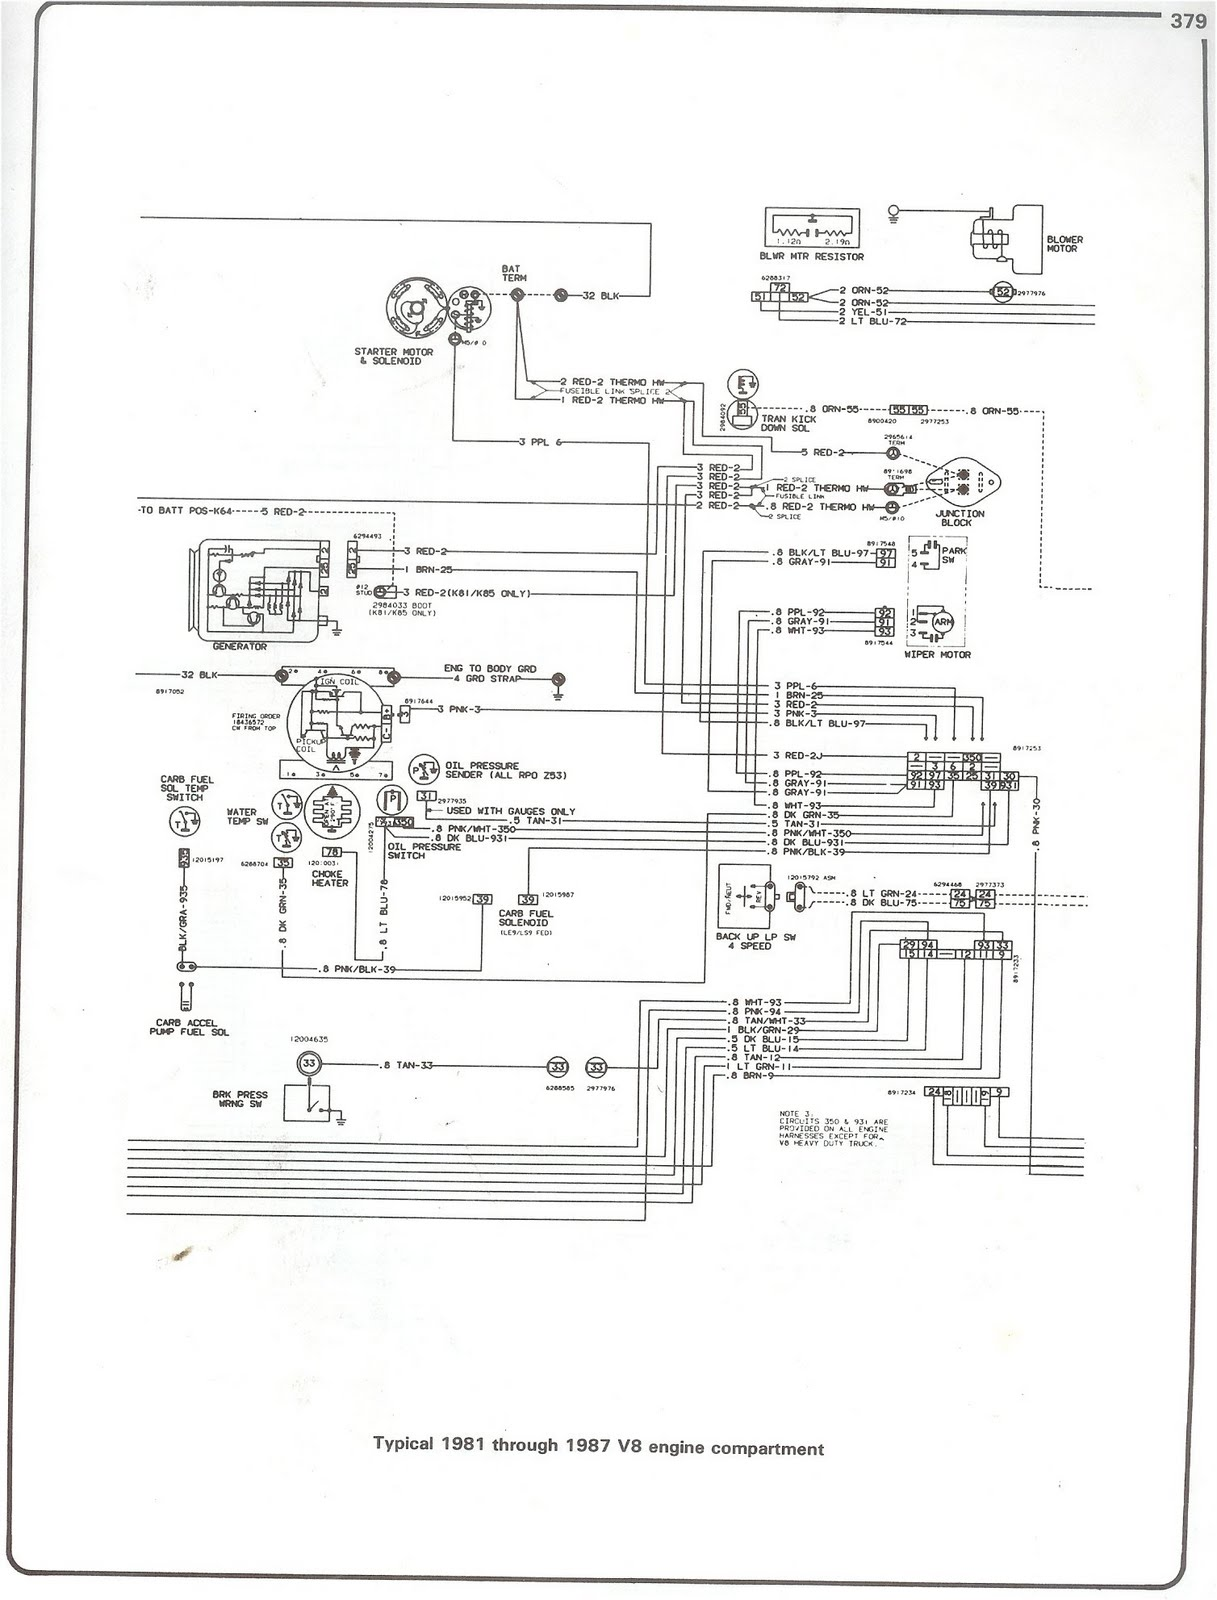 1981 Toyota Pickup Wiring Diagram Air Conditioner Condenser Free Auto 1987 Chevrolet V8 Truck